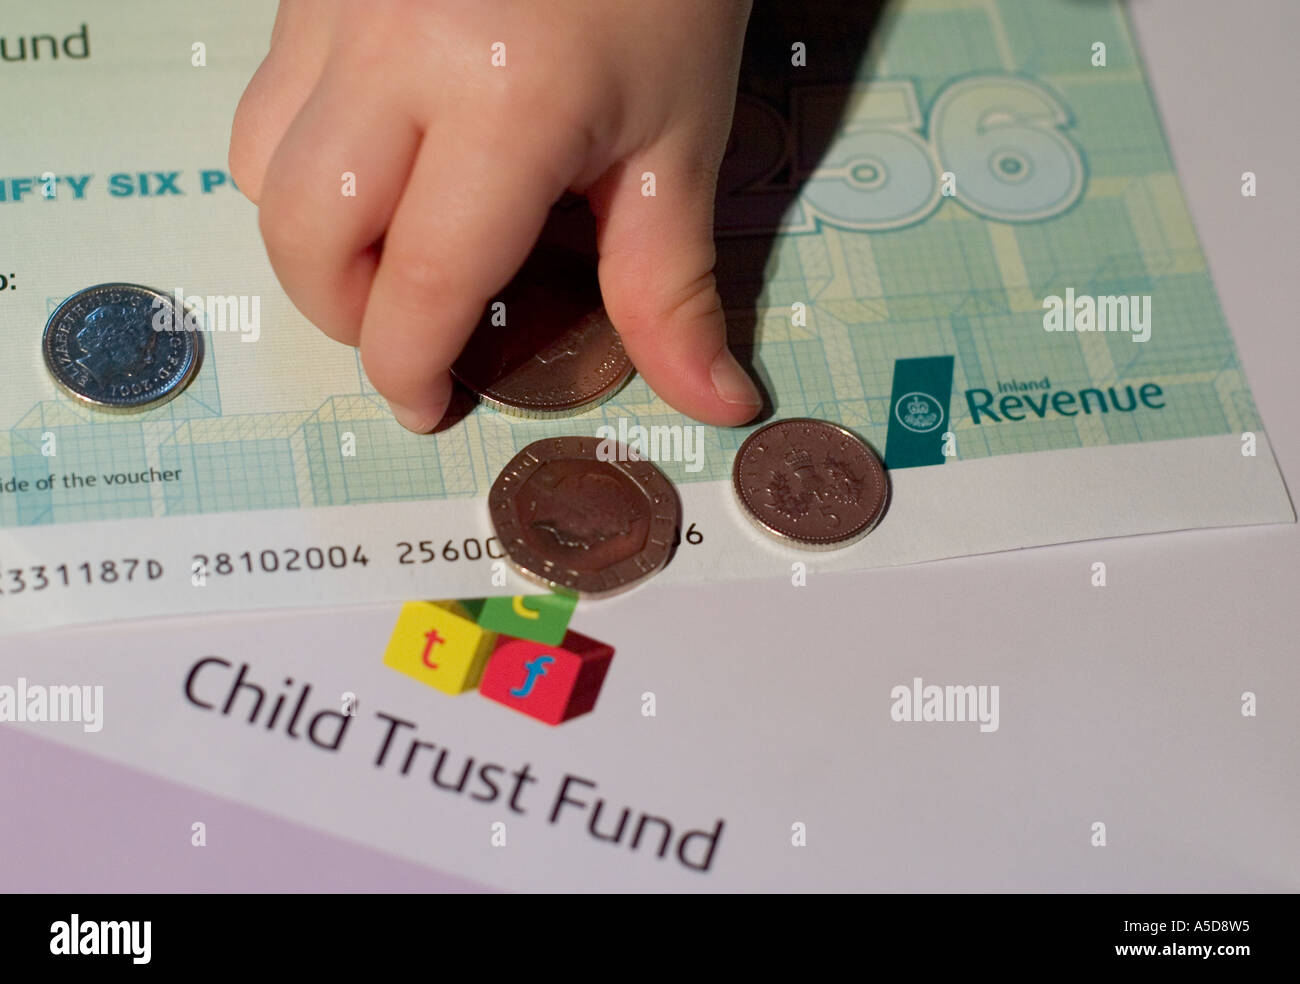 child-trust-fund-leaflet-and-voucher-with-baby-hands-picking-up-money-A5D8W5.jpg?profile=RESIZE_400x